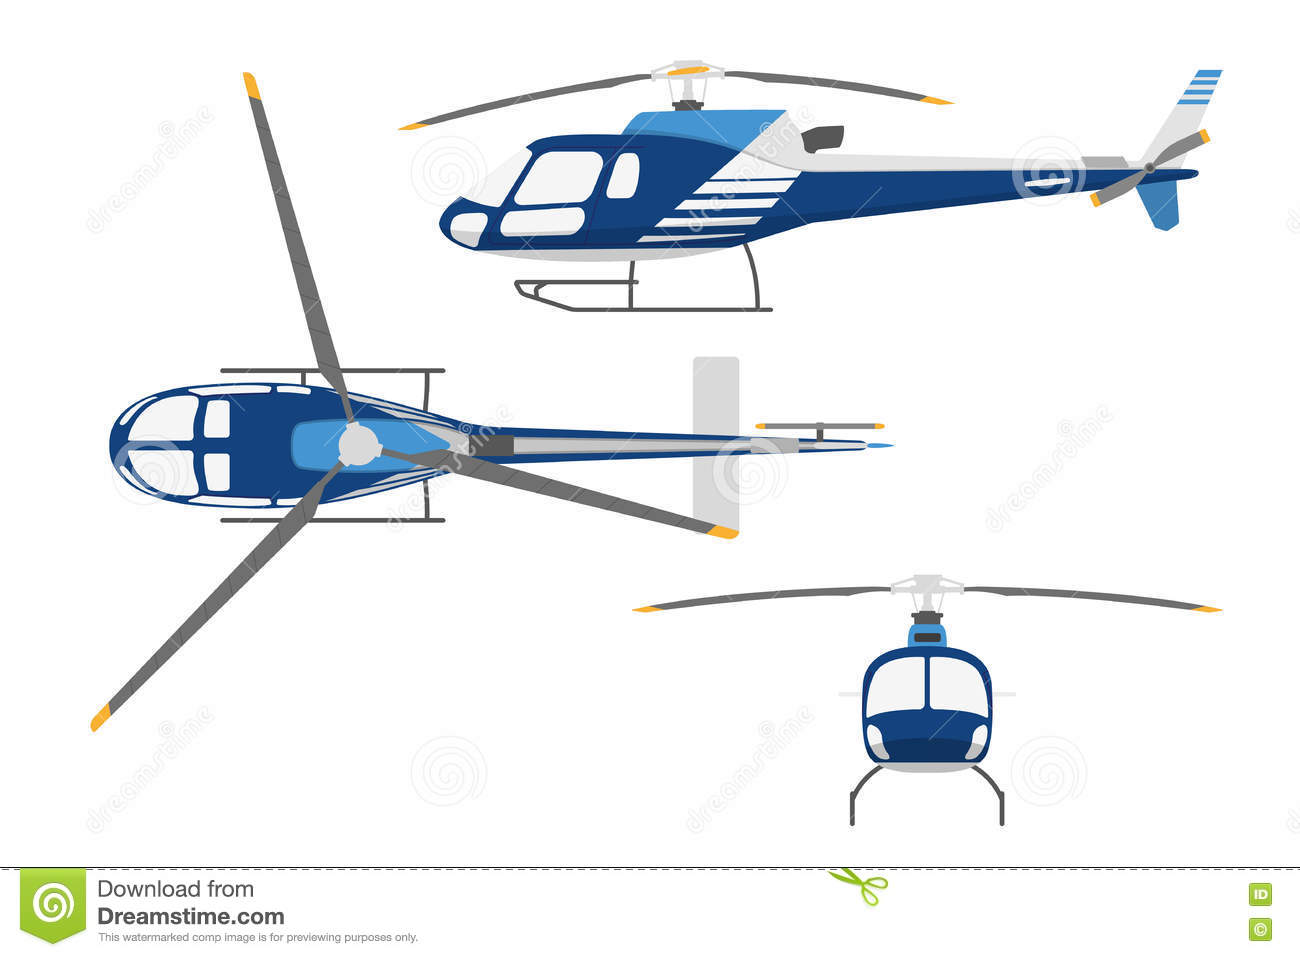 agusta 109 helicopter with Illustration Stock Dessin D Un Hlicoptre Dans Un Style Plat Image72502598 on Watch as well Aw109 G Muzz moreover Aw109 Battlefield Light Utility Helicopter Par Excellence besides Agusta A109 Power Elite additionally Helicoptero De  bate.